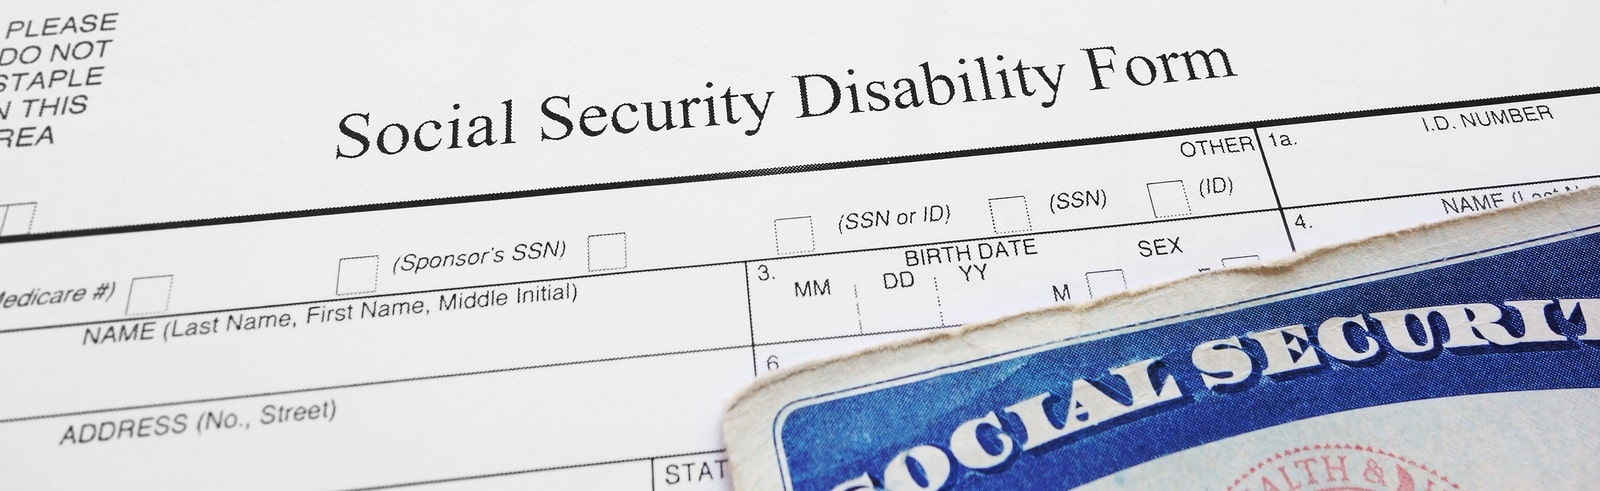 Social Security Disability Myths  Social Security Disability